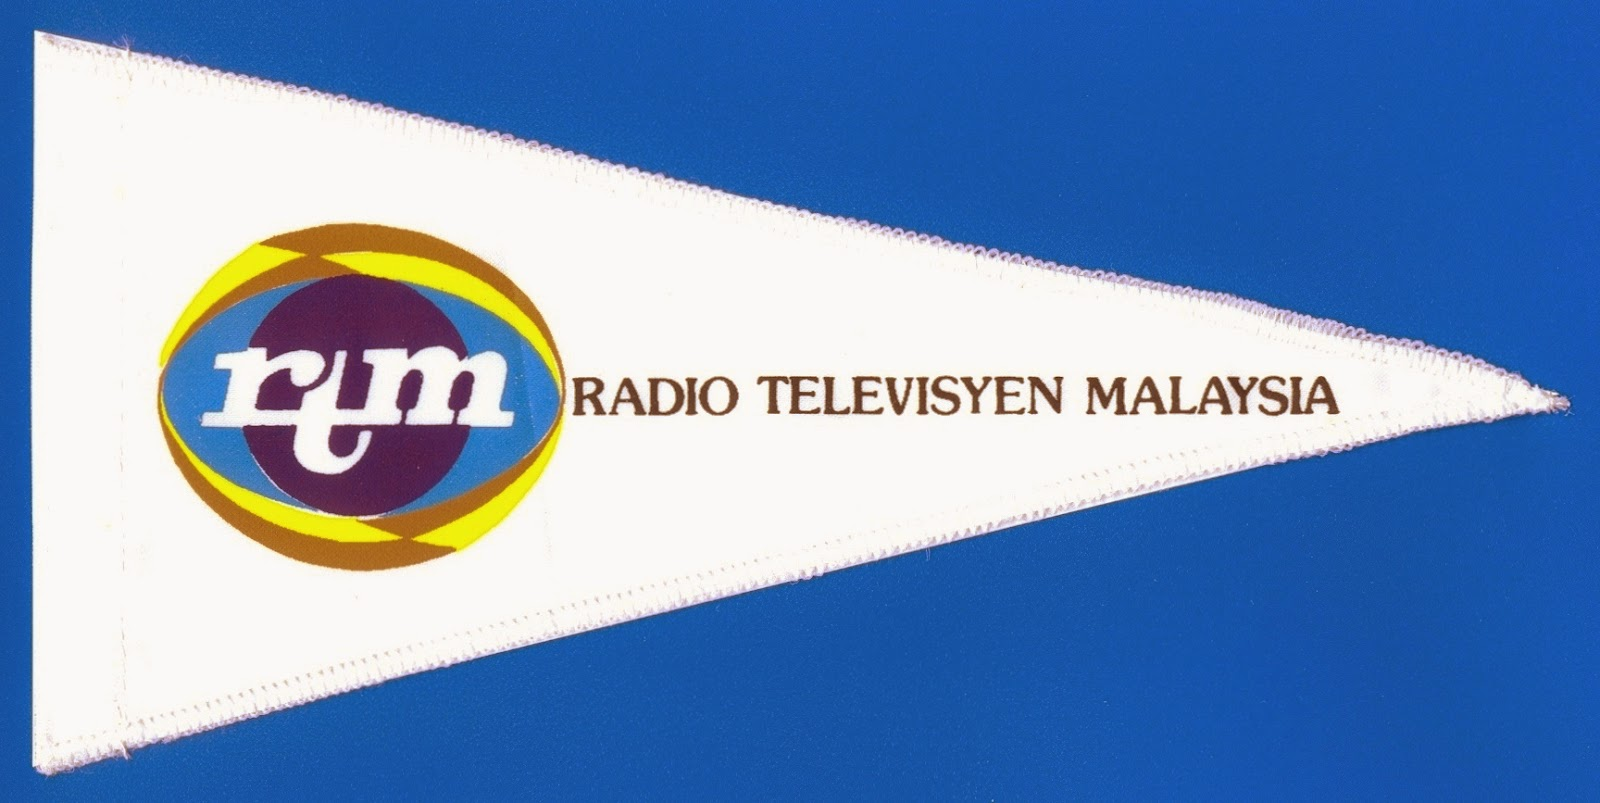 radio television malaysia essay We provide excellent essay writing service 24/7 enjoy proficient essay writing and custom writing services provided by professional academic writers.